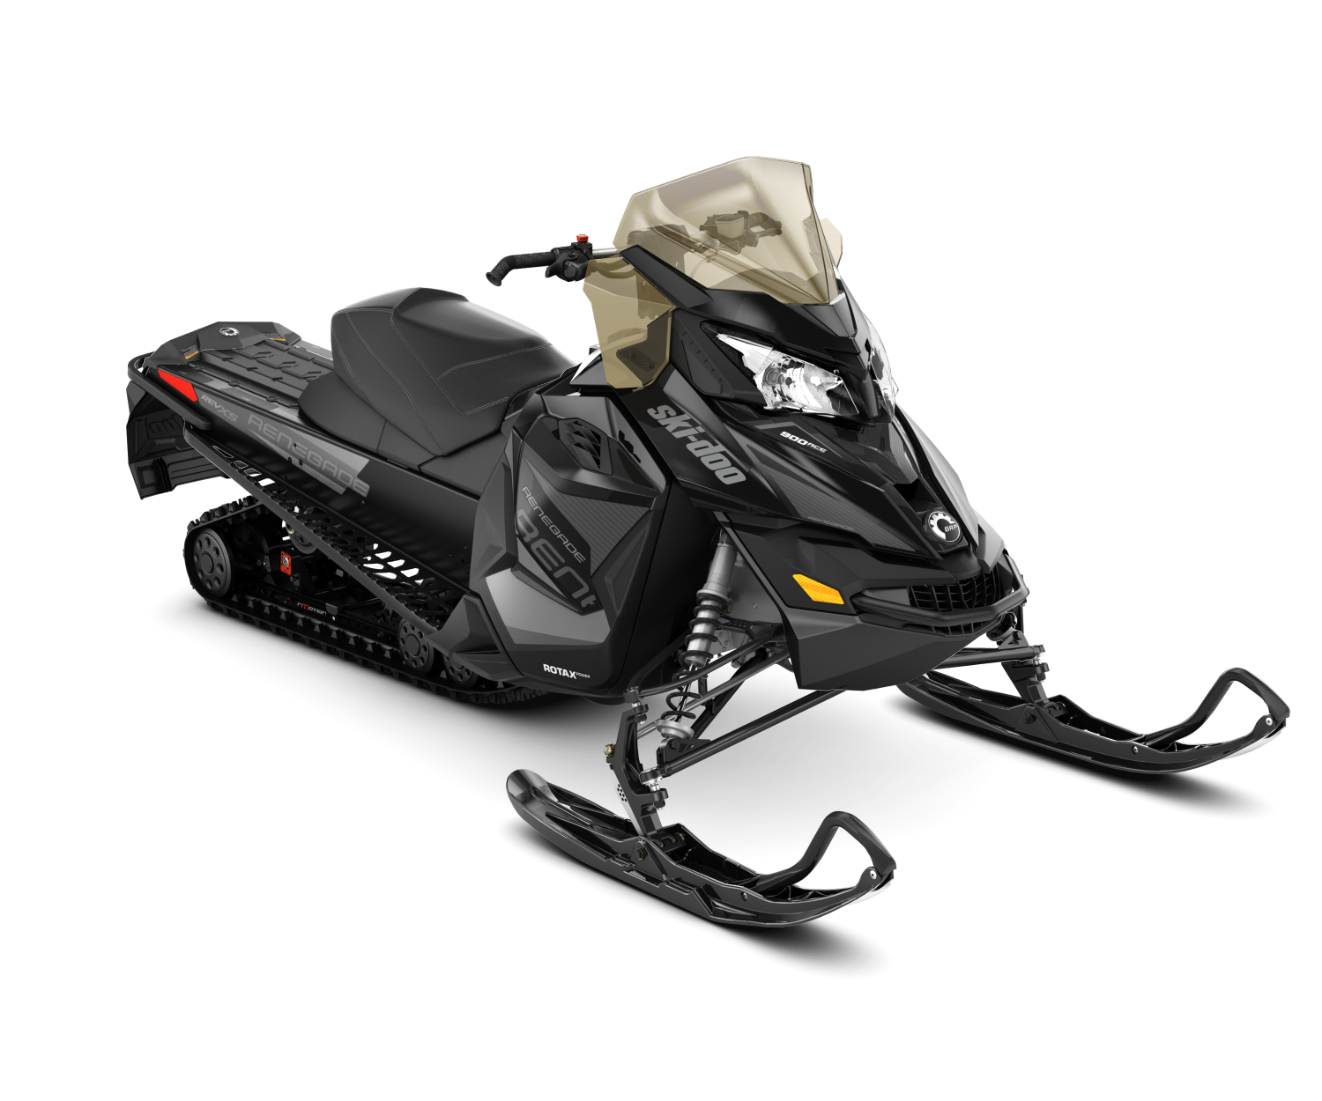 2018 Ski-Doo Renegade Adrenaline 900 ACE in New Britain, Pennsylvania